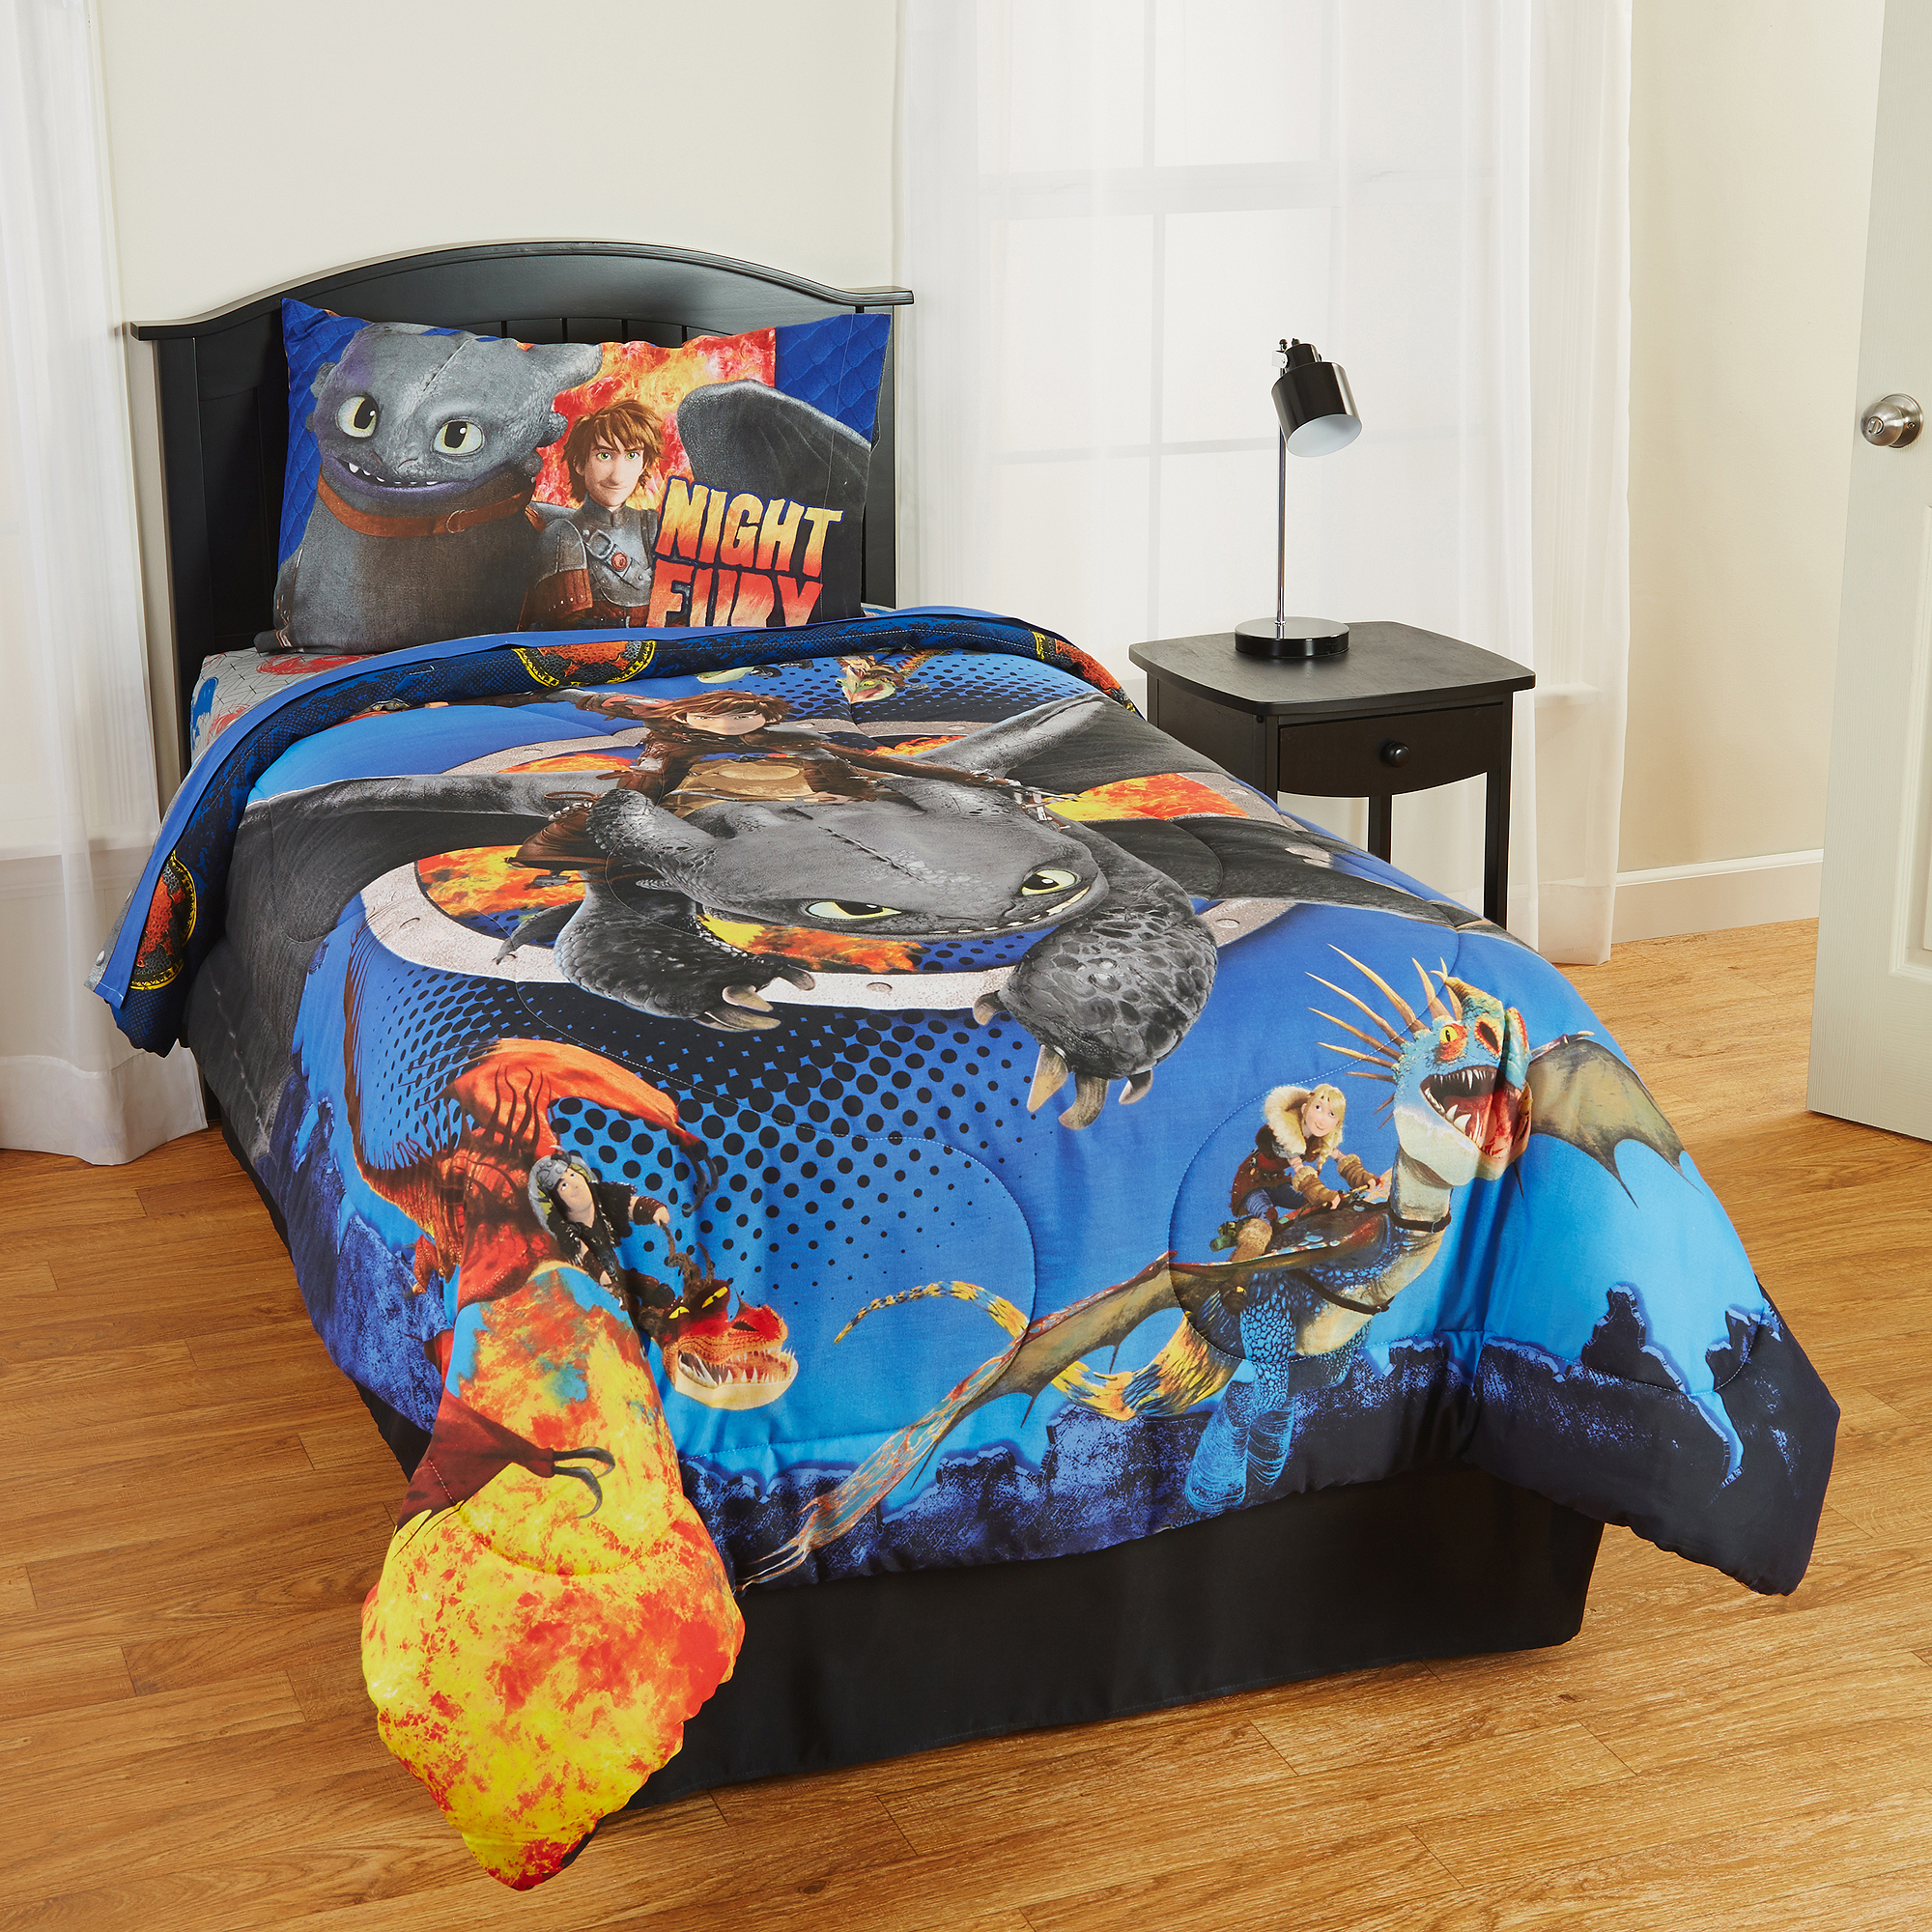 How To Train Your Dragon 2 Bedding Comforter, Twin